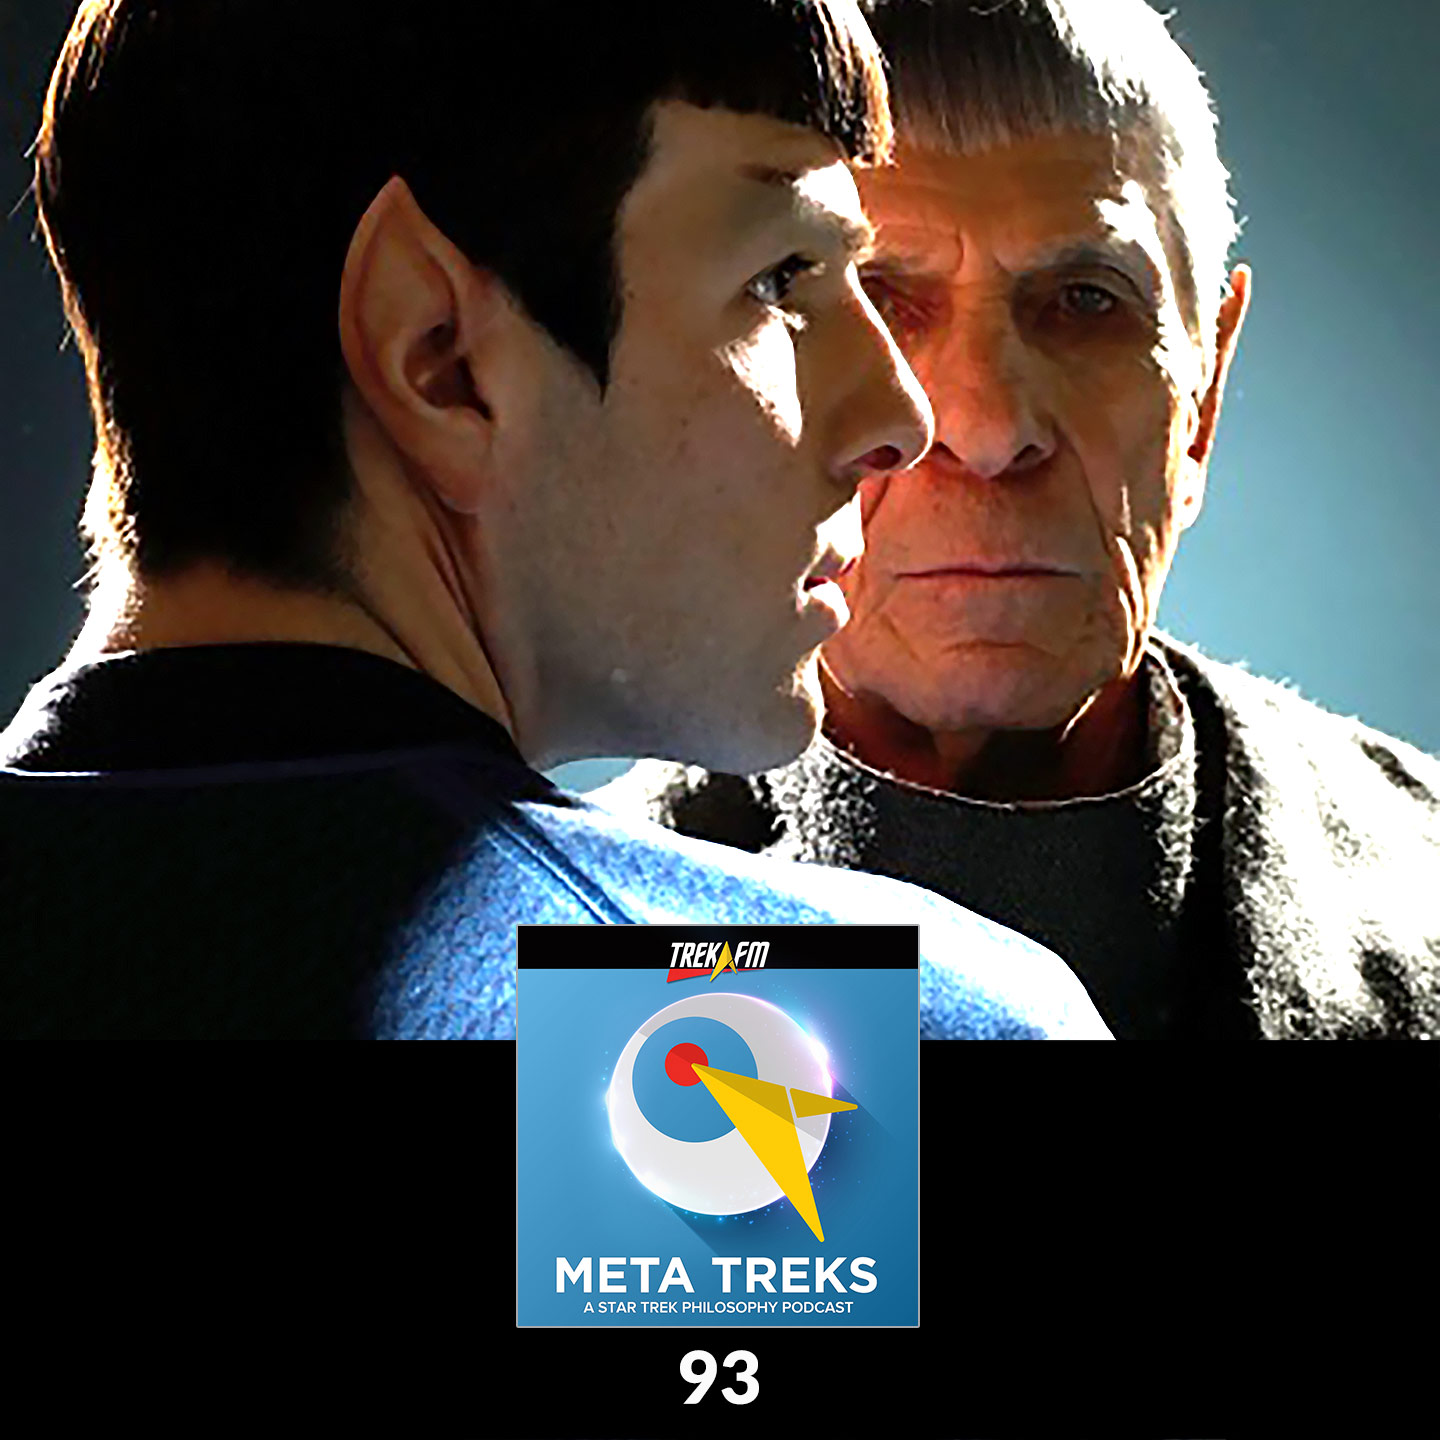 Meta Treks 93: In a Relevantly Similar Possible Universe, I Would Always Have Been Your Friend, Jim - Alternate Universes and Modal Realism.